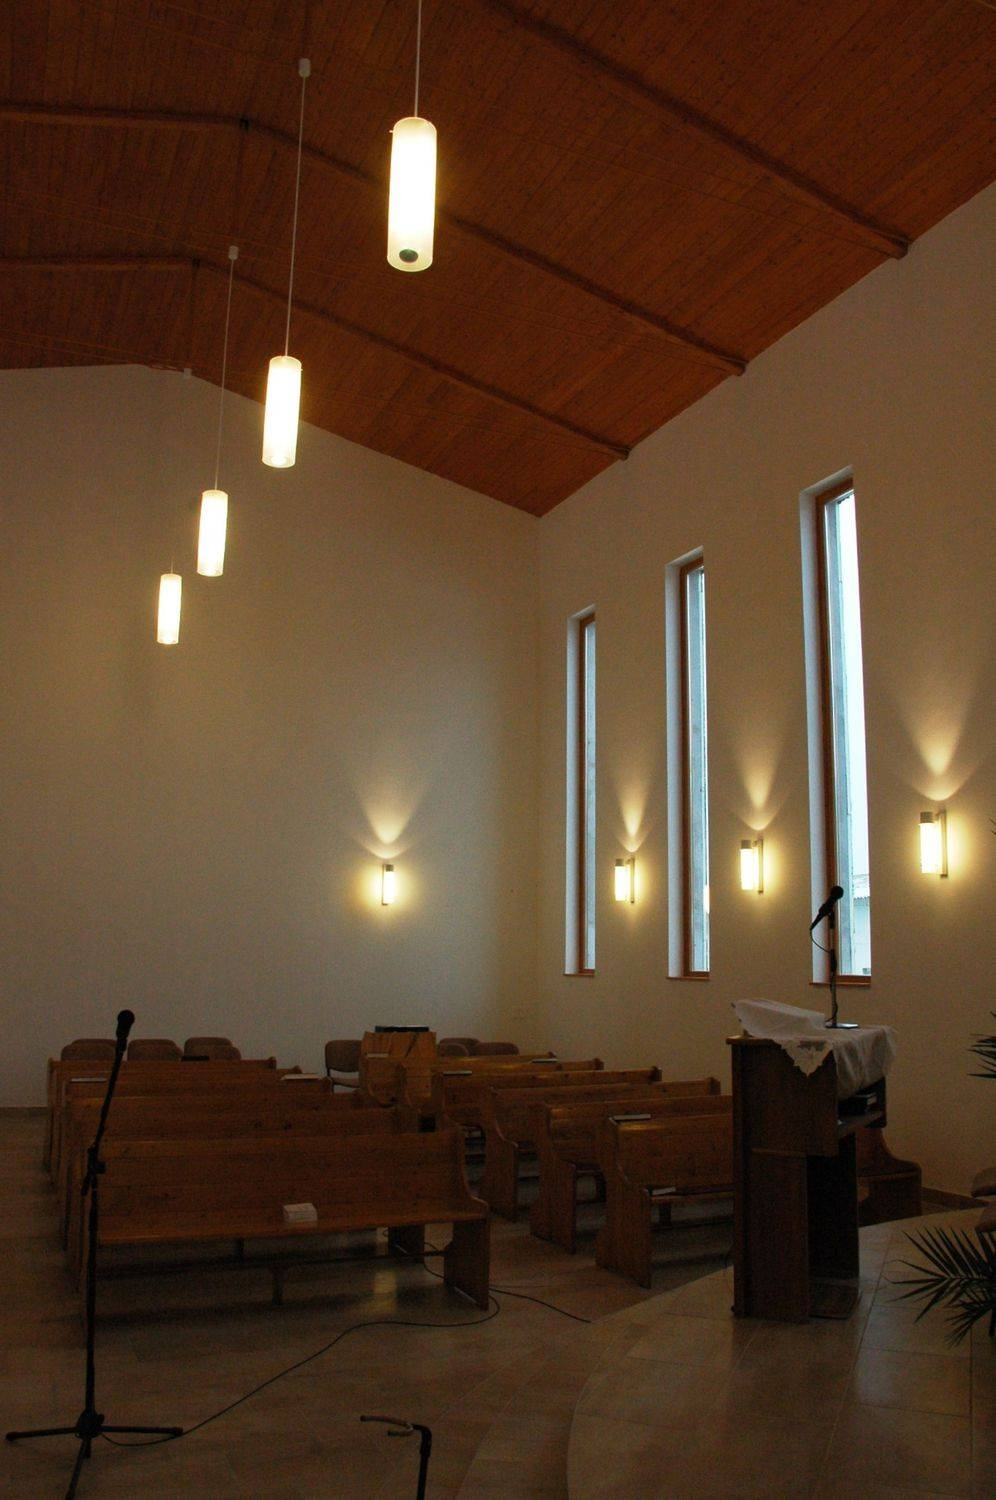 Luxury Church Pendant Lights 18 In Pendant Light Conversion With with regard to Church Pendant Lights (Image 12 of 15)